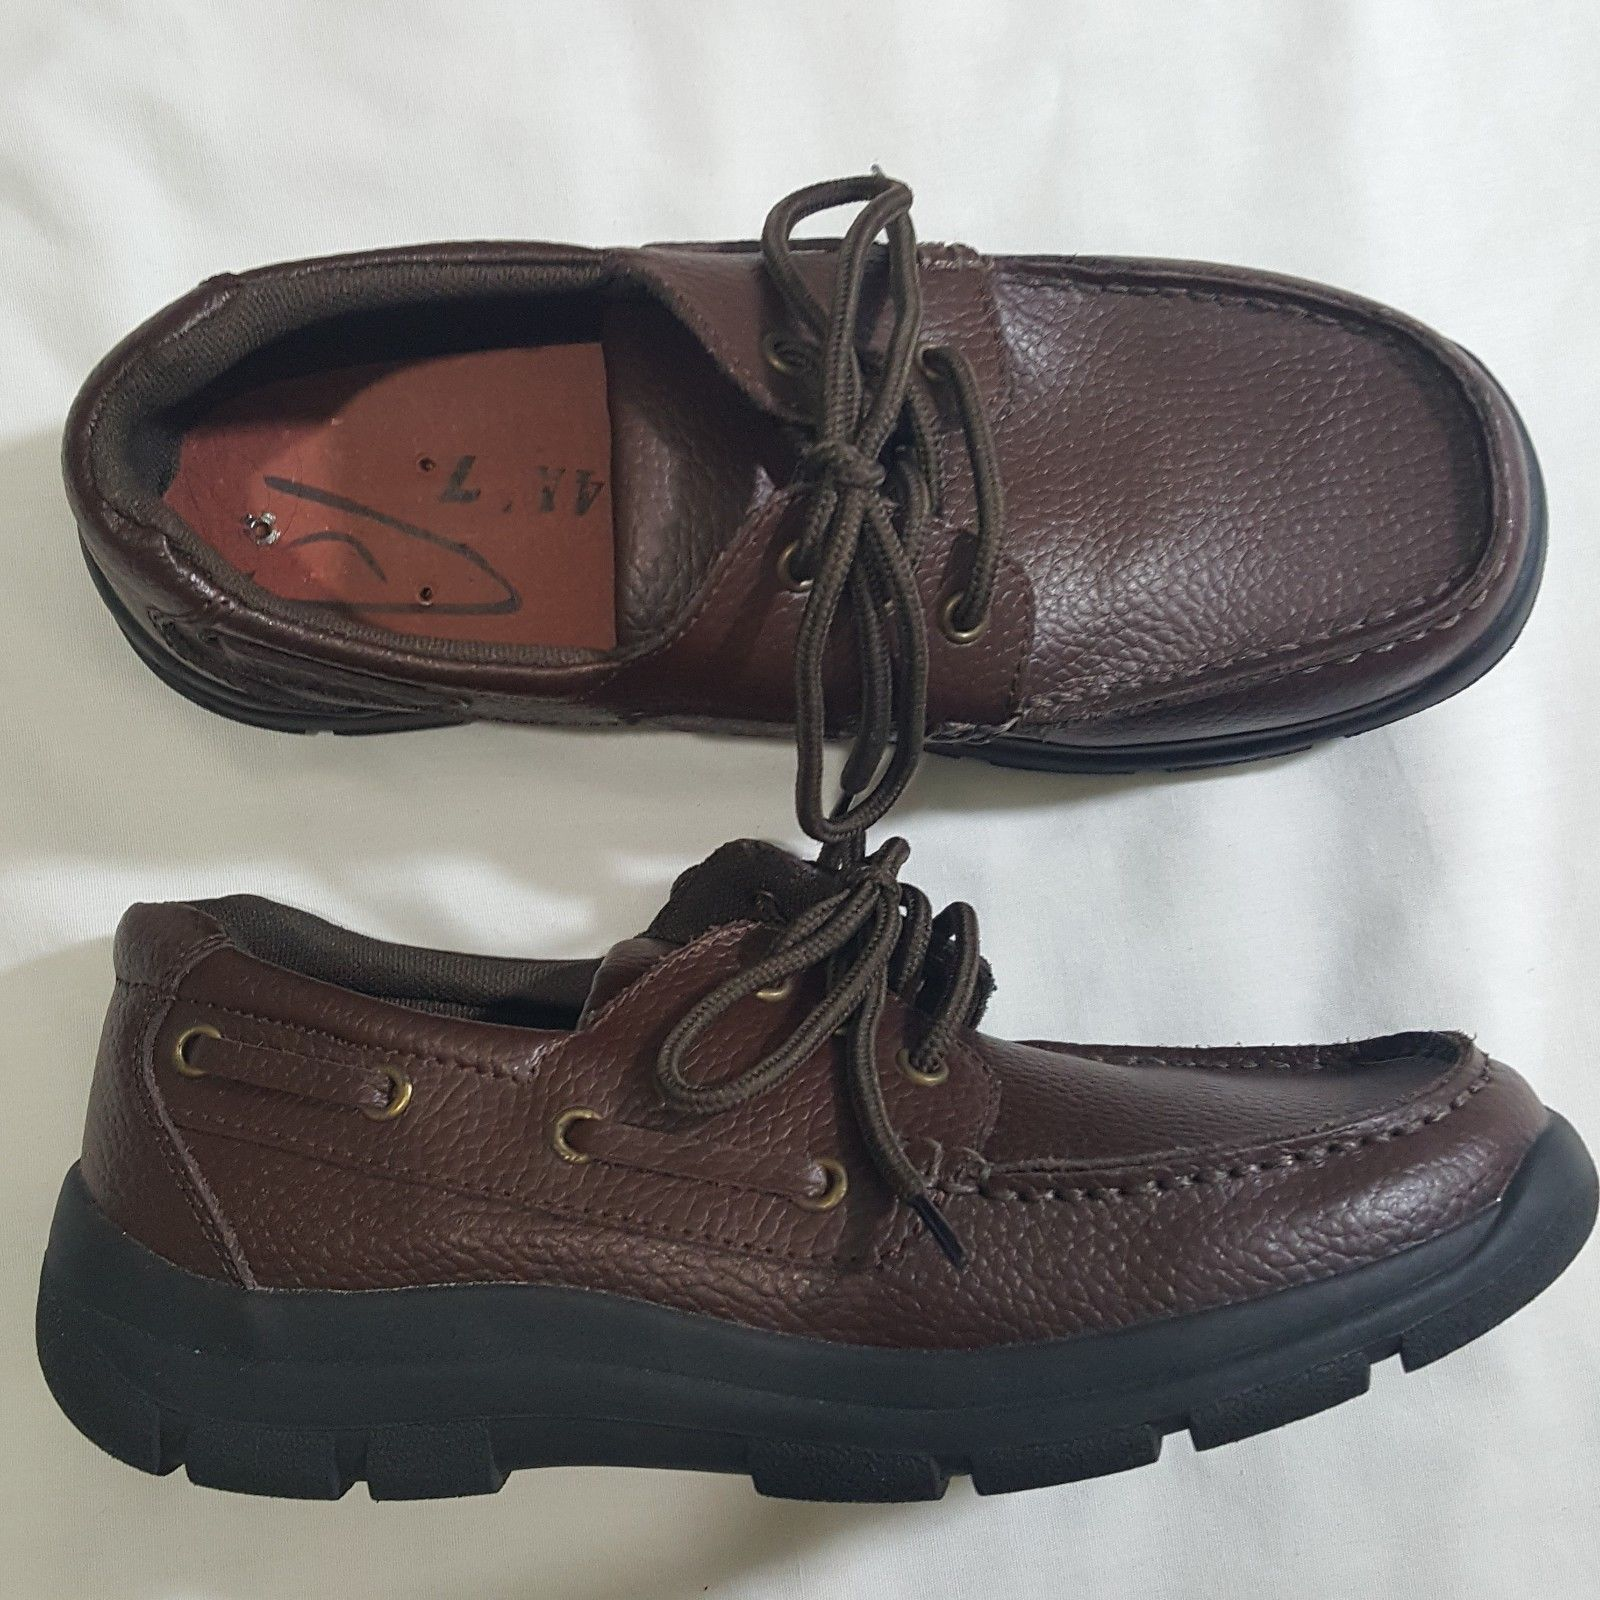 Primary image for Dr Zen Nautica Boat Wide Shoe Brown Leather 3 ring Unisex  Mens 6.5 Womens 7.5